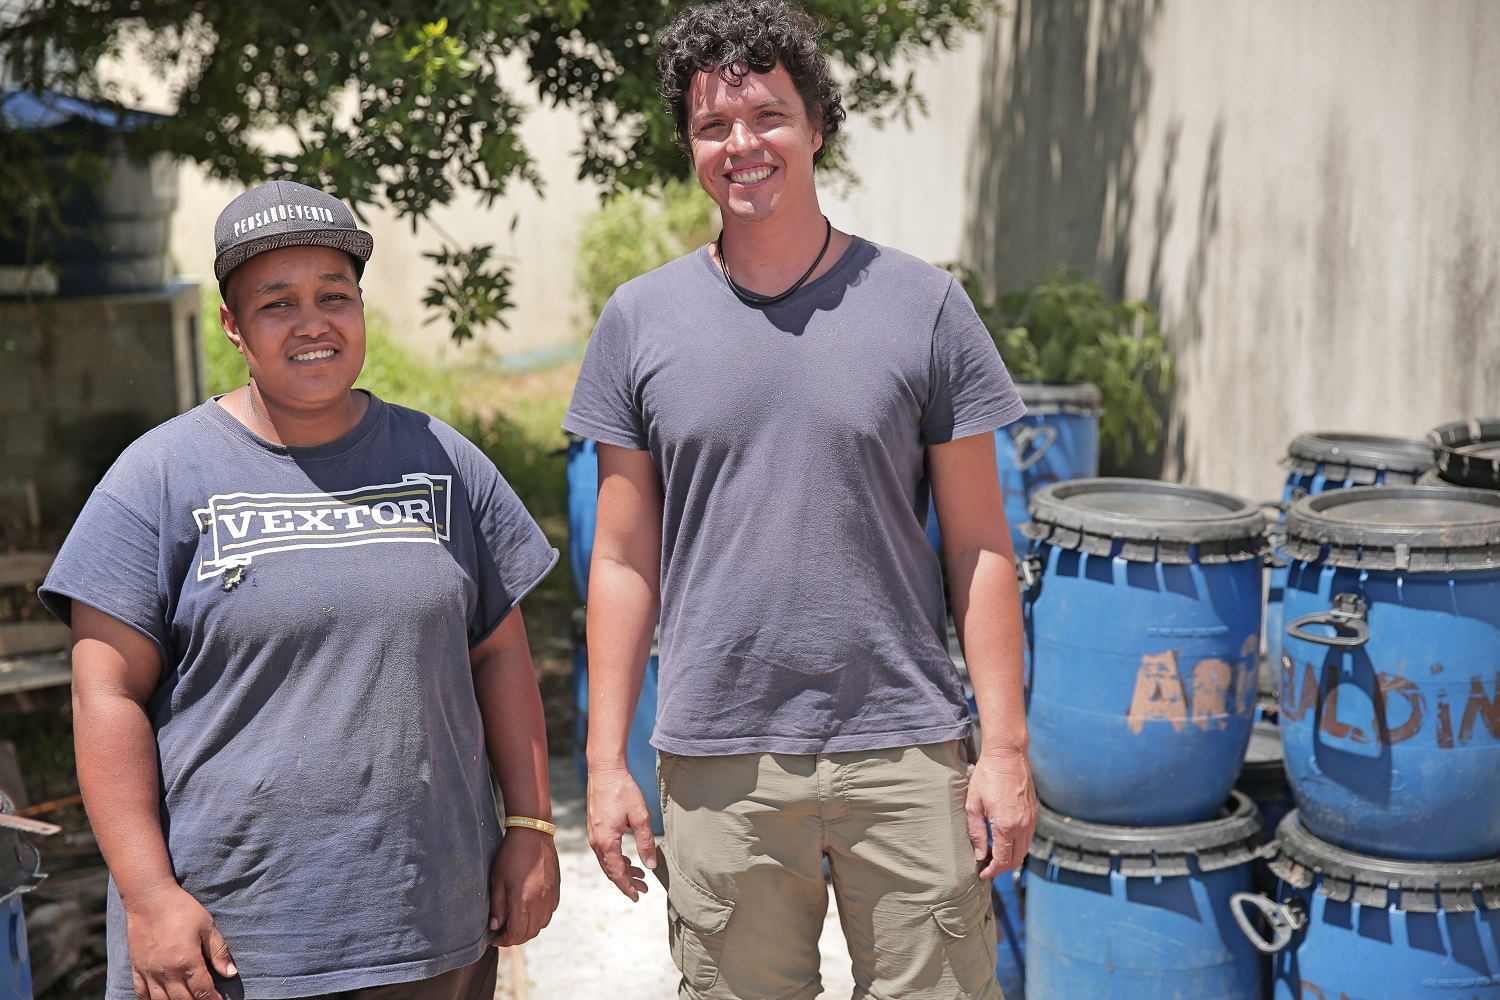 On the left side of the picture is a light-skinned black woman wearing a cap and a light purple t-shirt. She smiles at the camera. Next to her is a tall, thin, white man, with curly hair, also smiling at the camera. His t-shirt is the same color as hers. Beside him is a pile of blue buckets. In the background, some grass, and a tree. The leaves of the tree form shadows on a concrete wall.